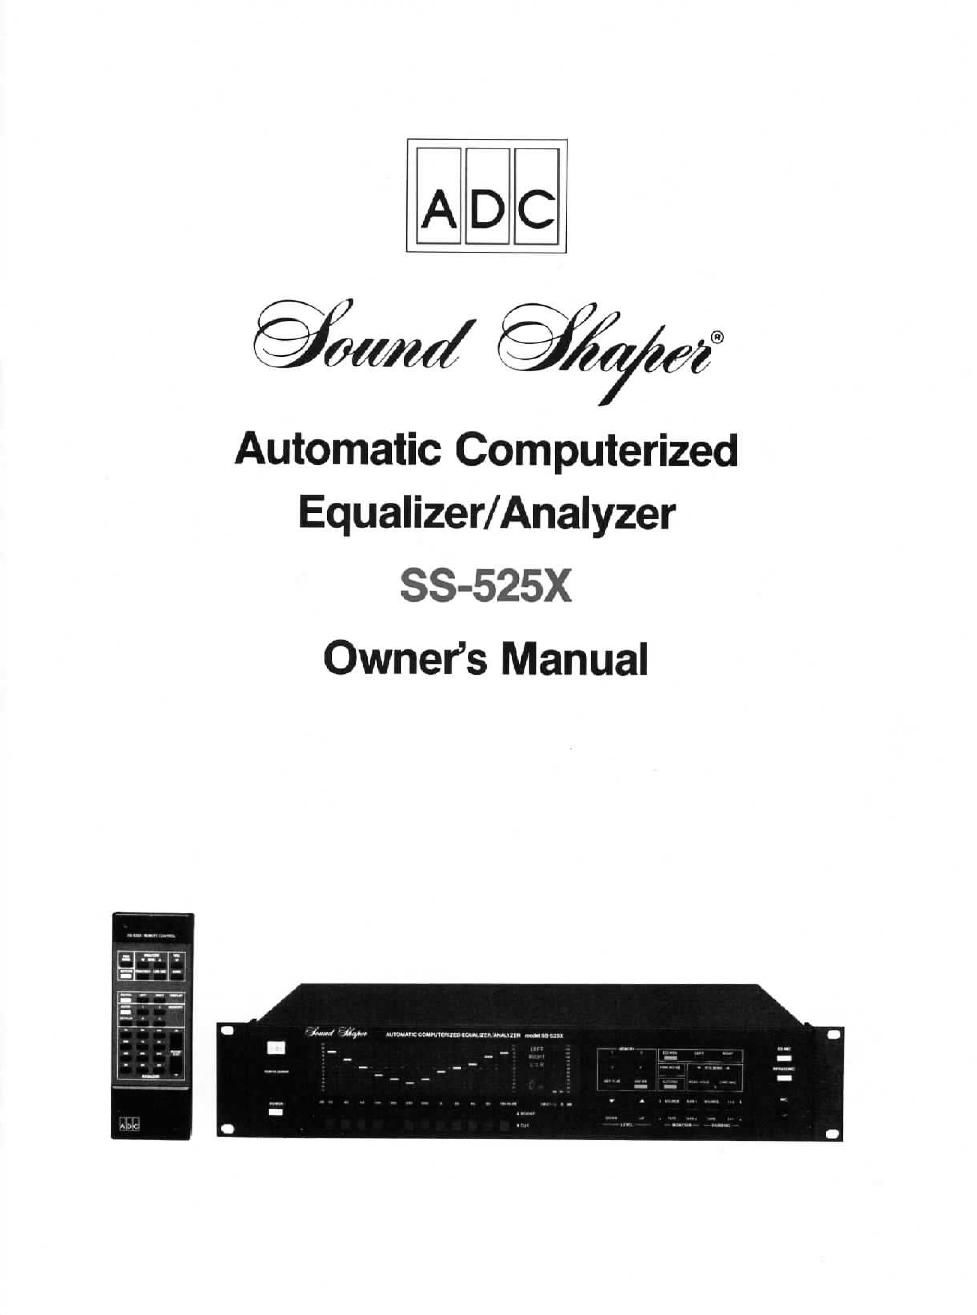 adc soundshaper 525 x owners manual